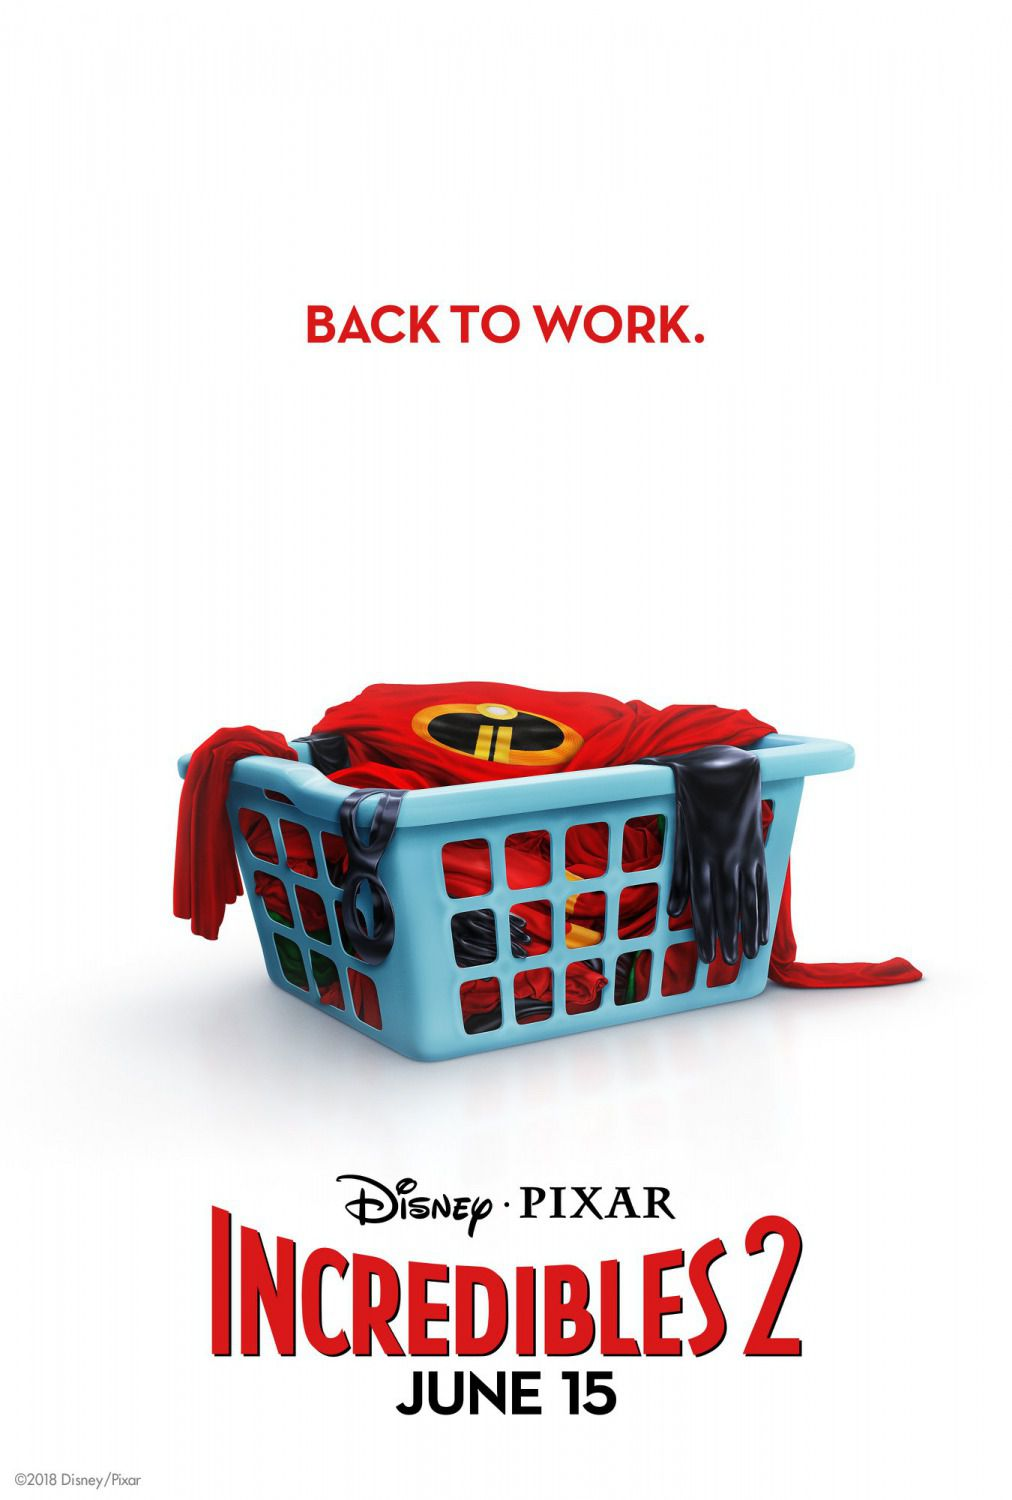 Incredibles 2 - Incredibili sequel - poster laundy